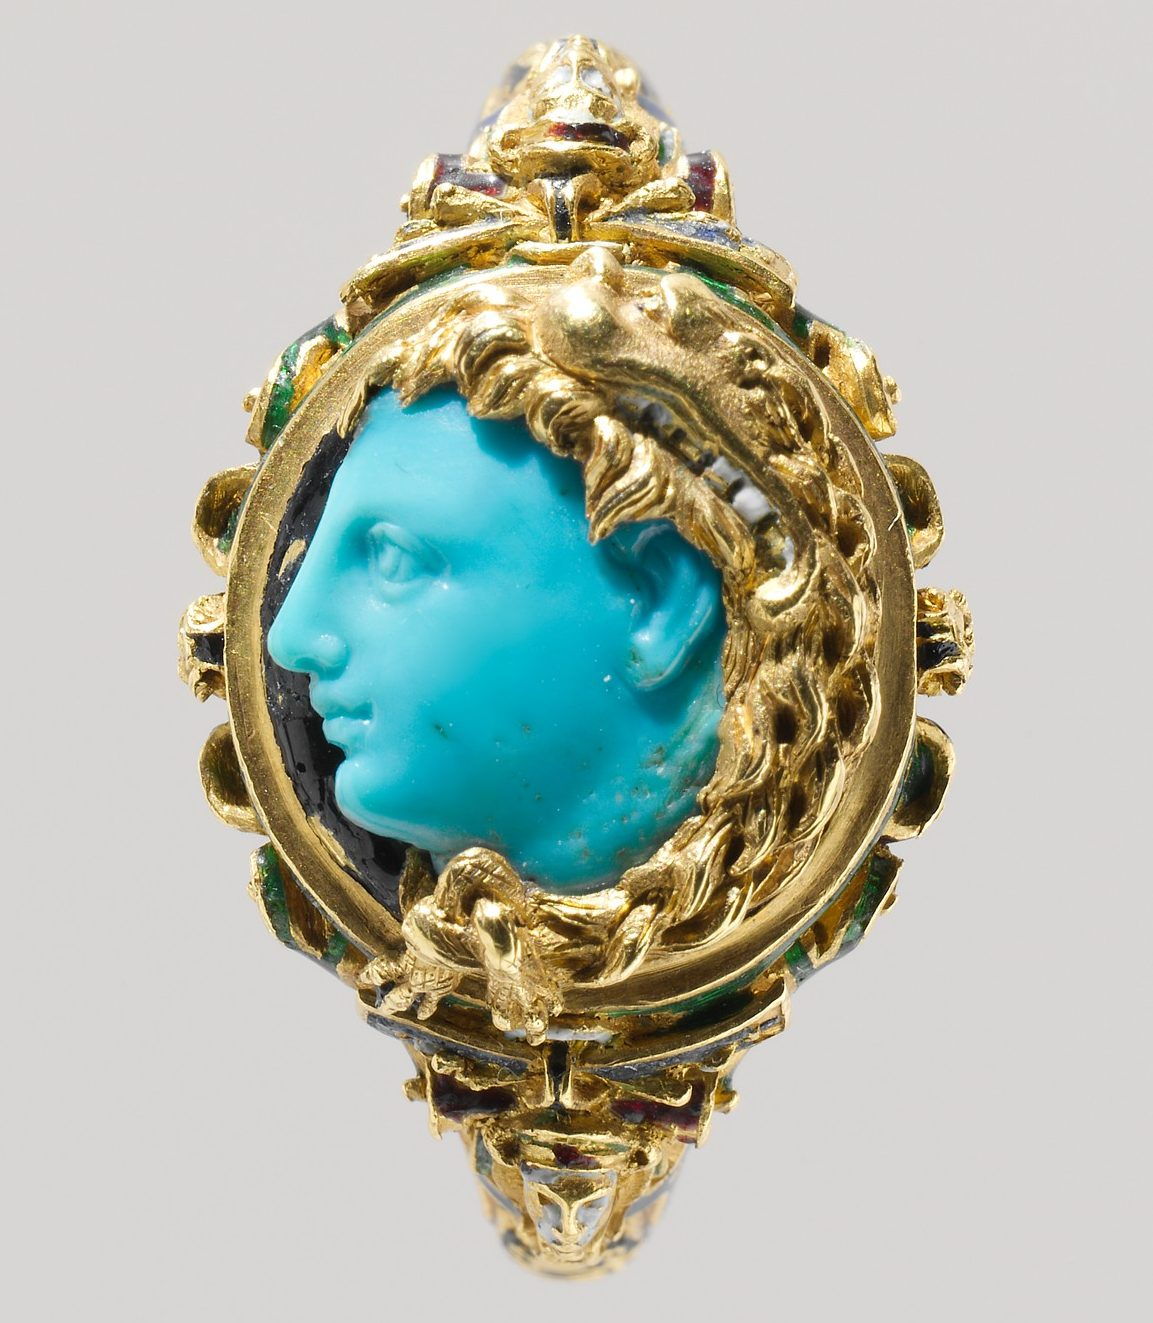 cameo-ring-turquoise-e1529503170977